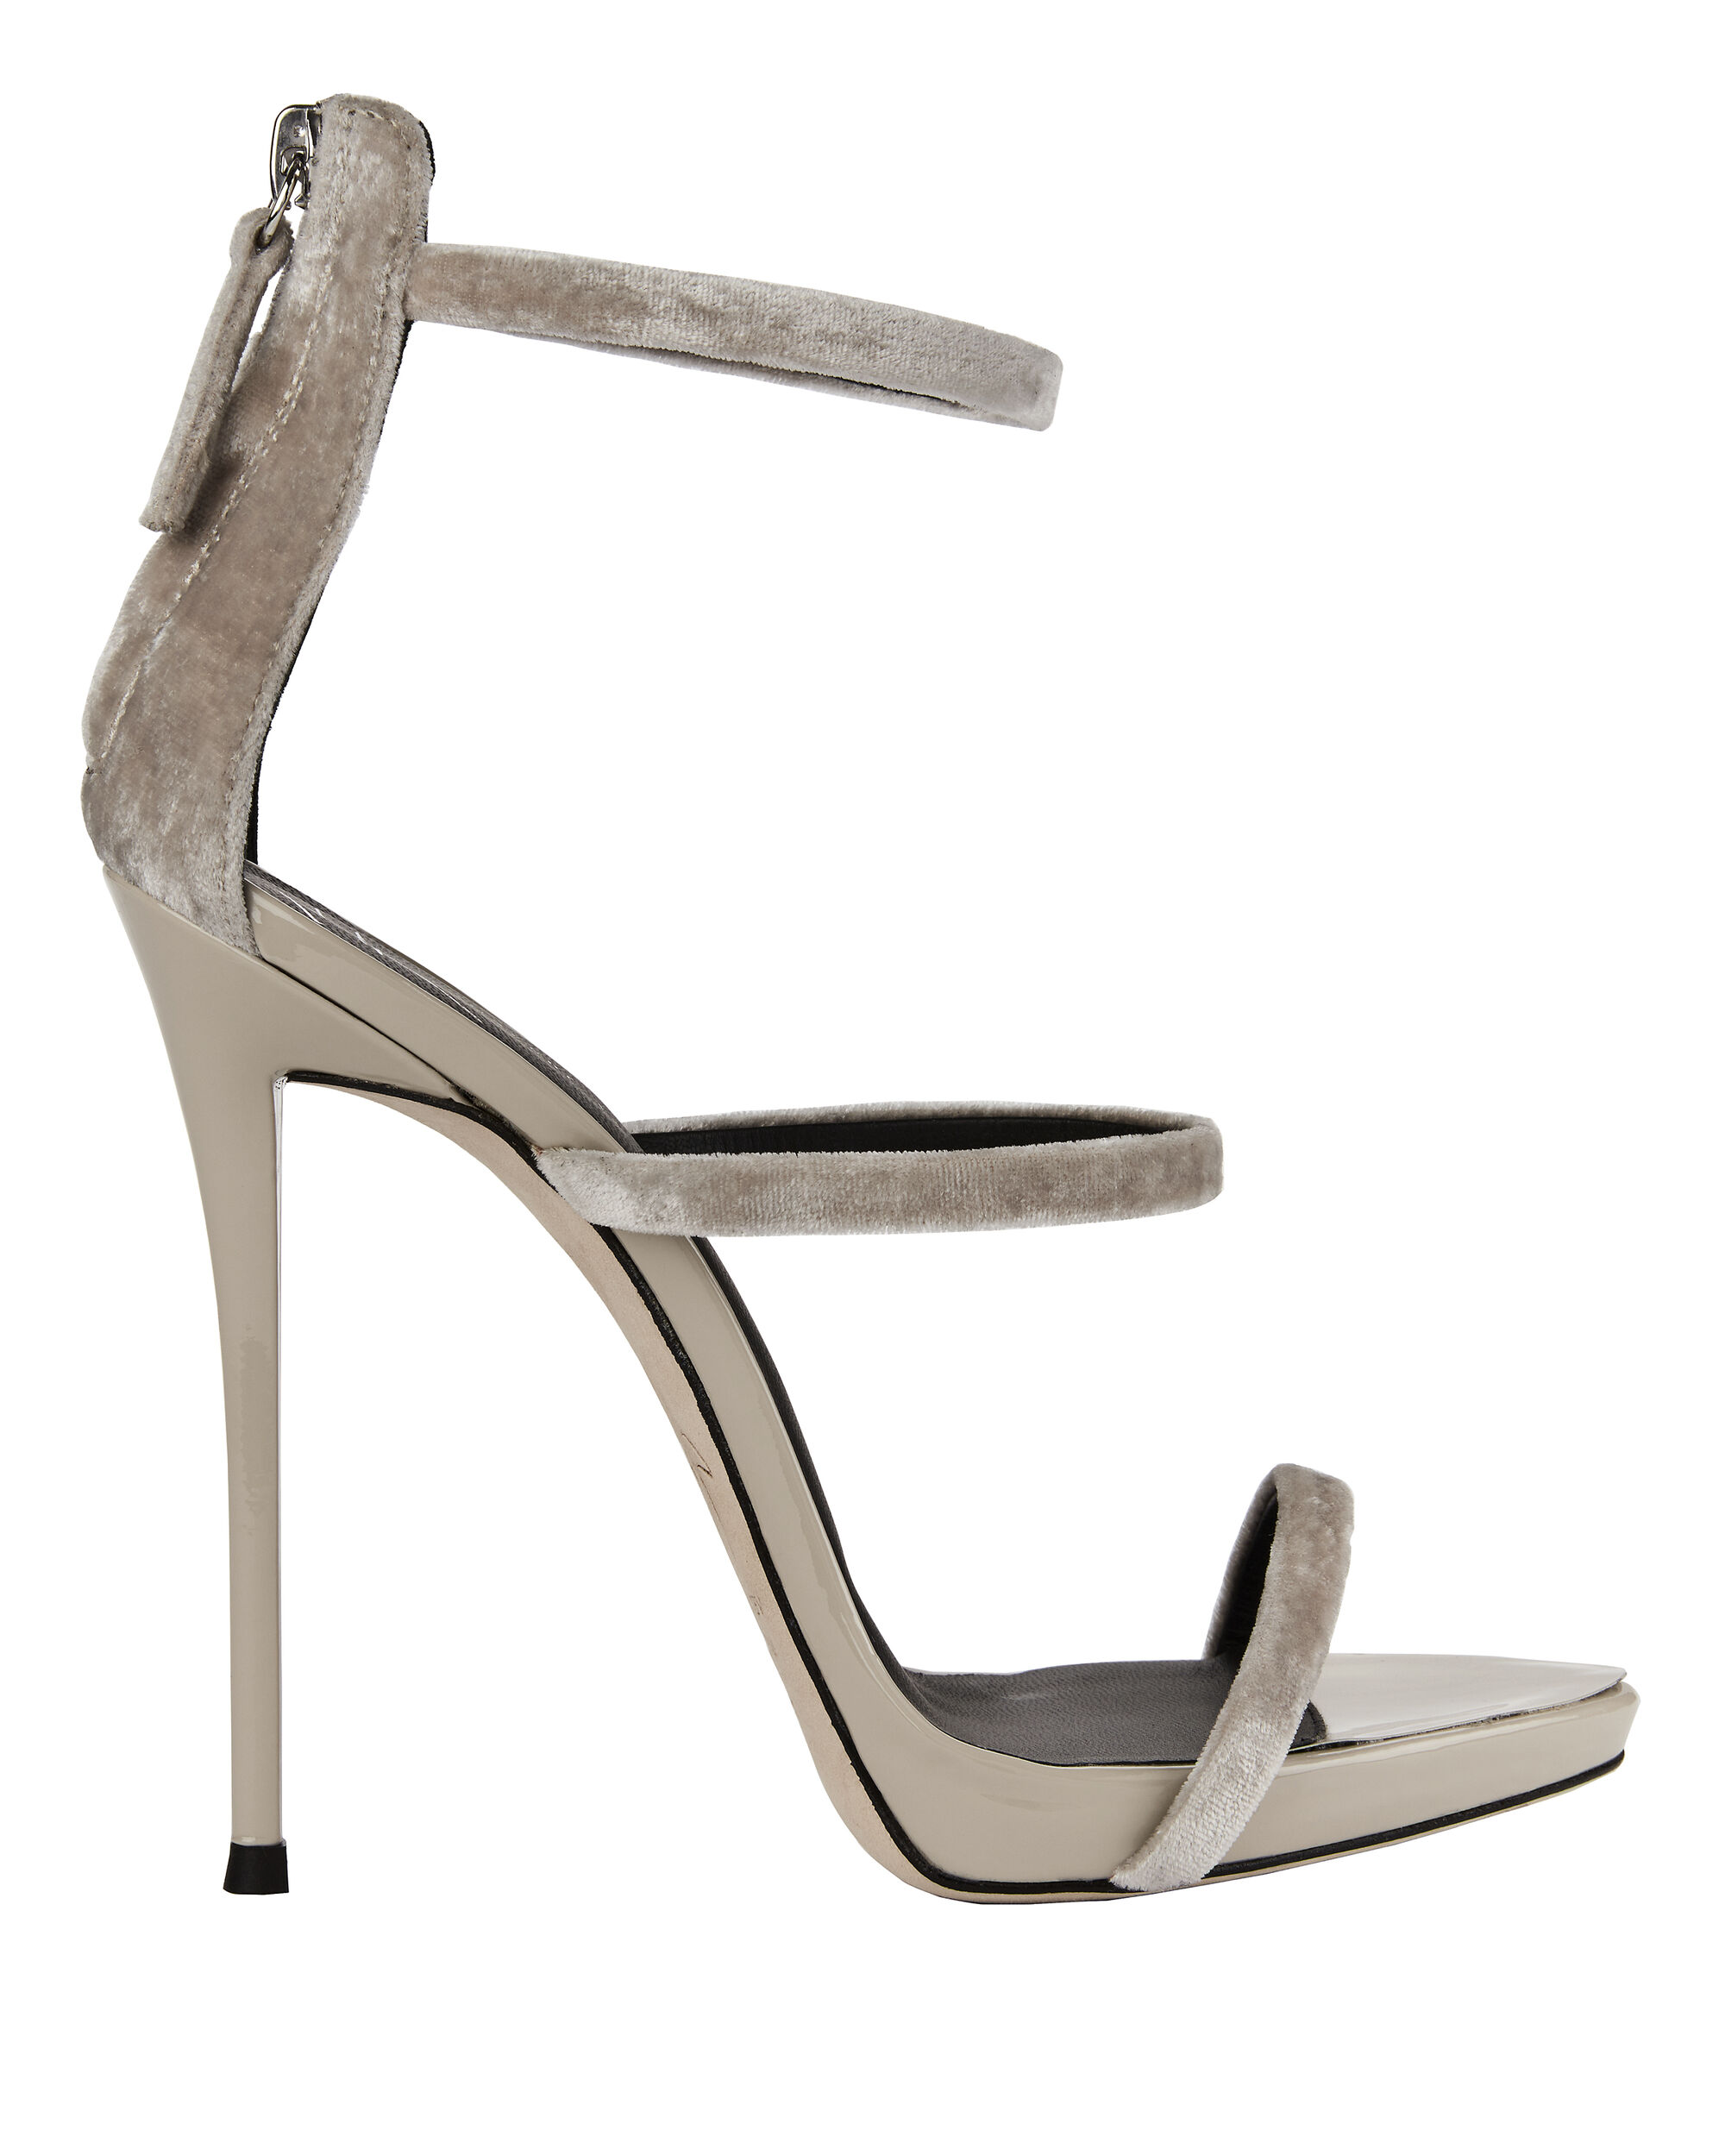 Coline Velvet Strappy Silver Sandals, METALLIC, hi-res